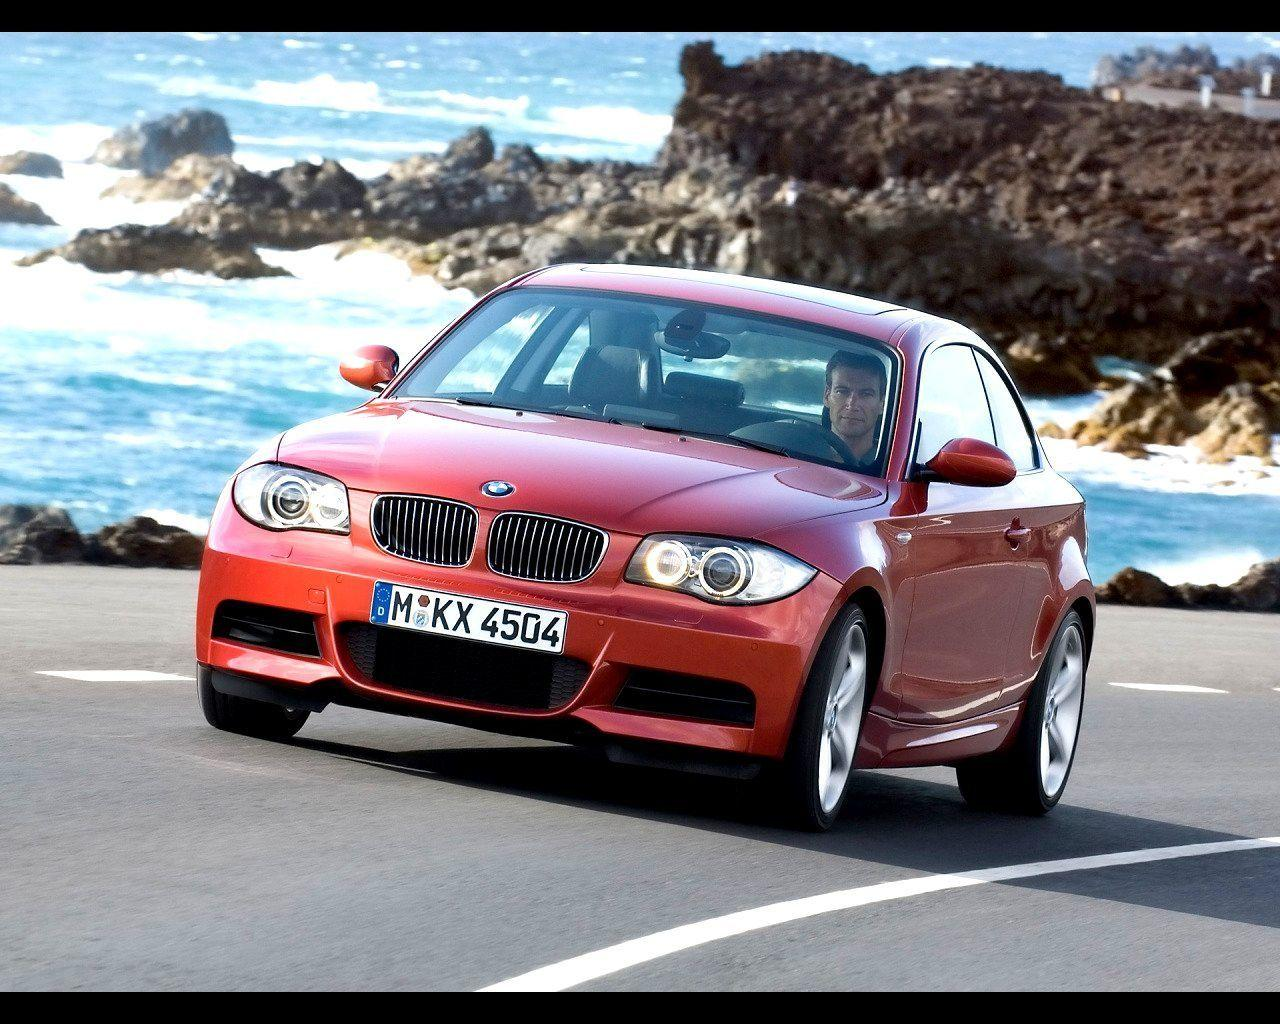 2008 BMW 1 Series Coupe Wallpaper 12 - 1280x1024